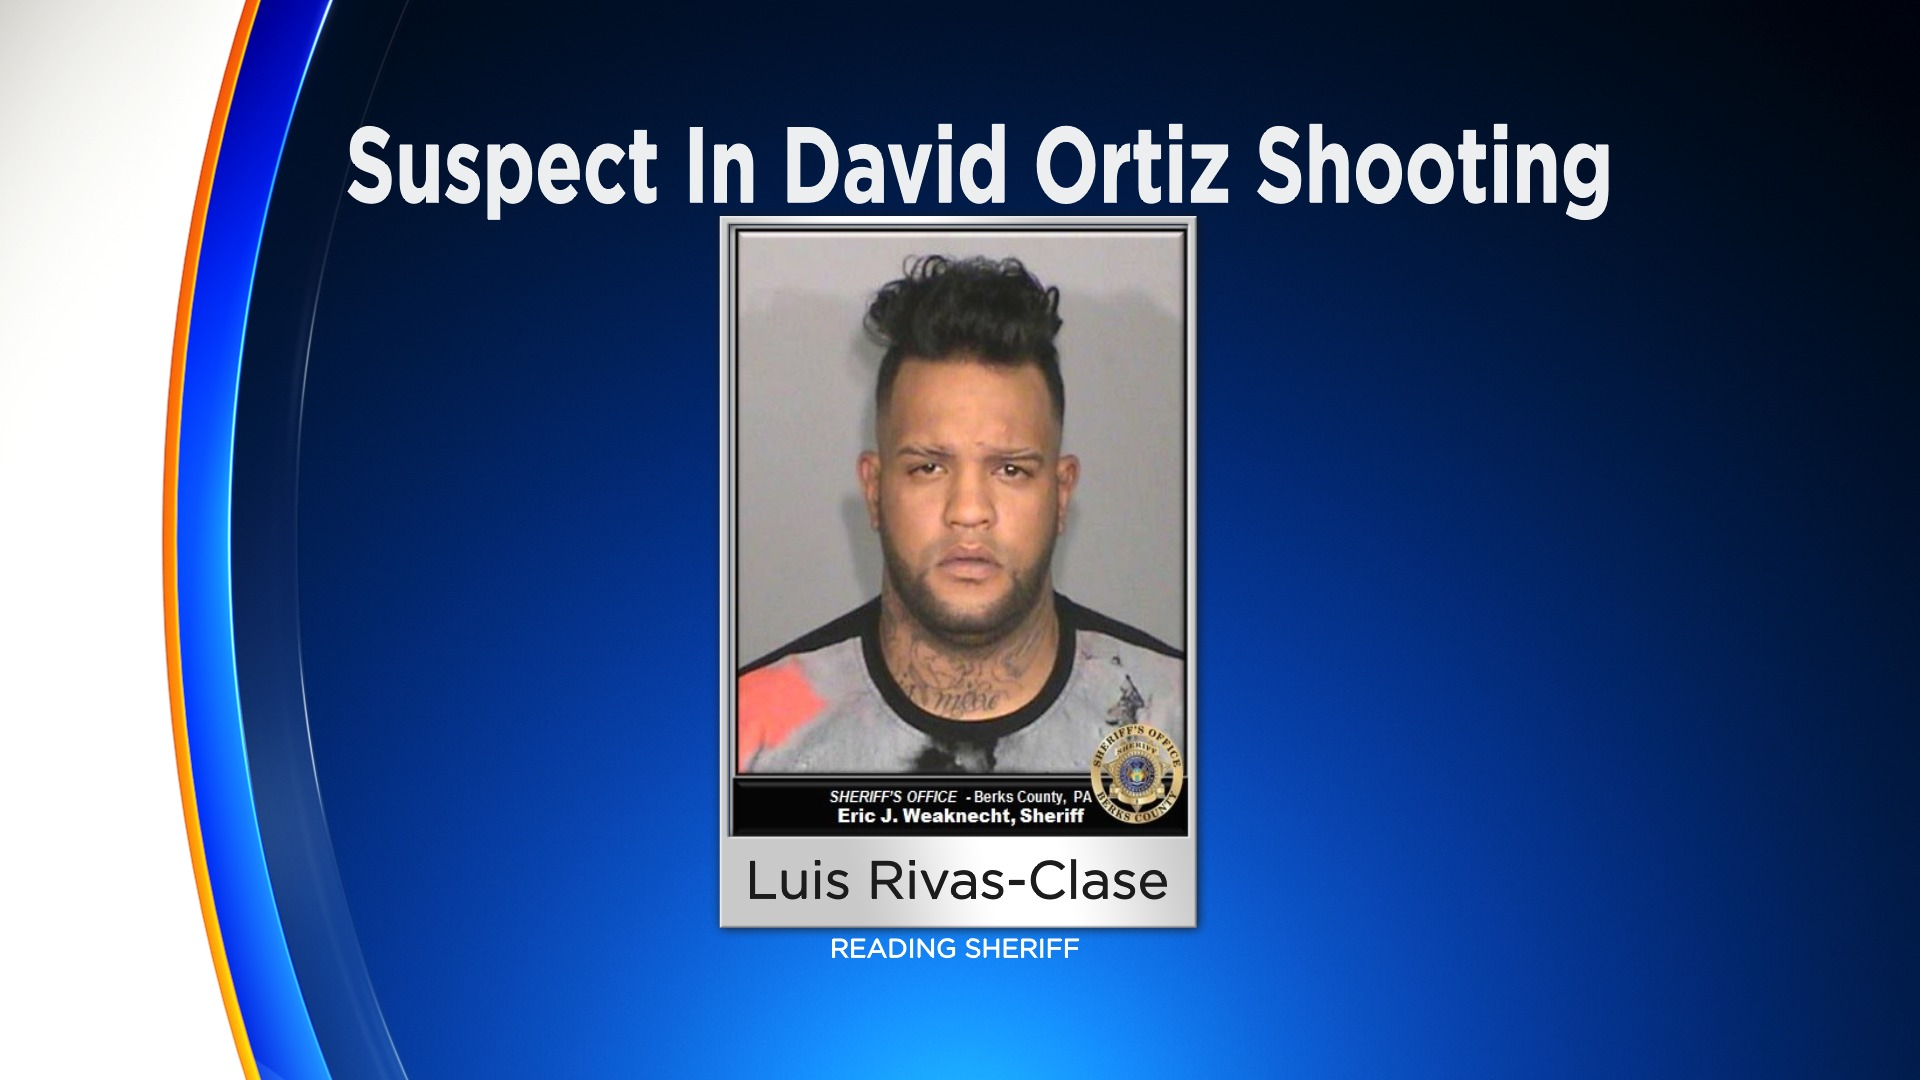 Suspect In David Ortiz Shooting Also Wanted For Attempted Homicide